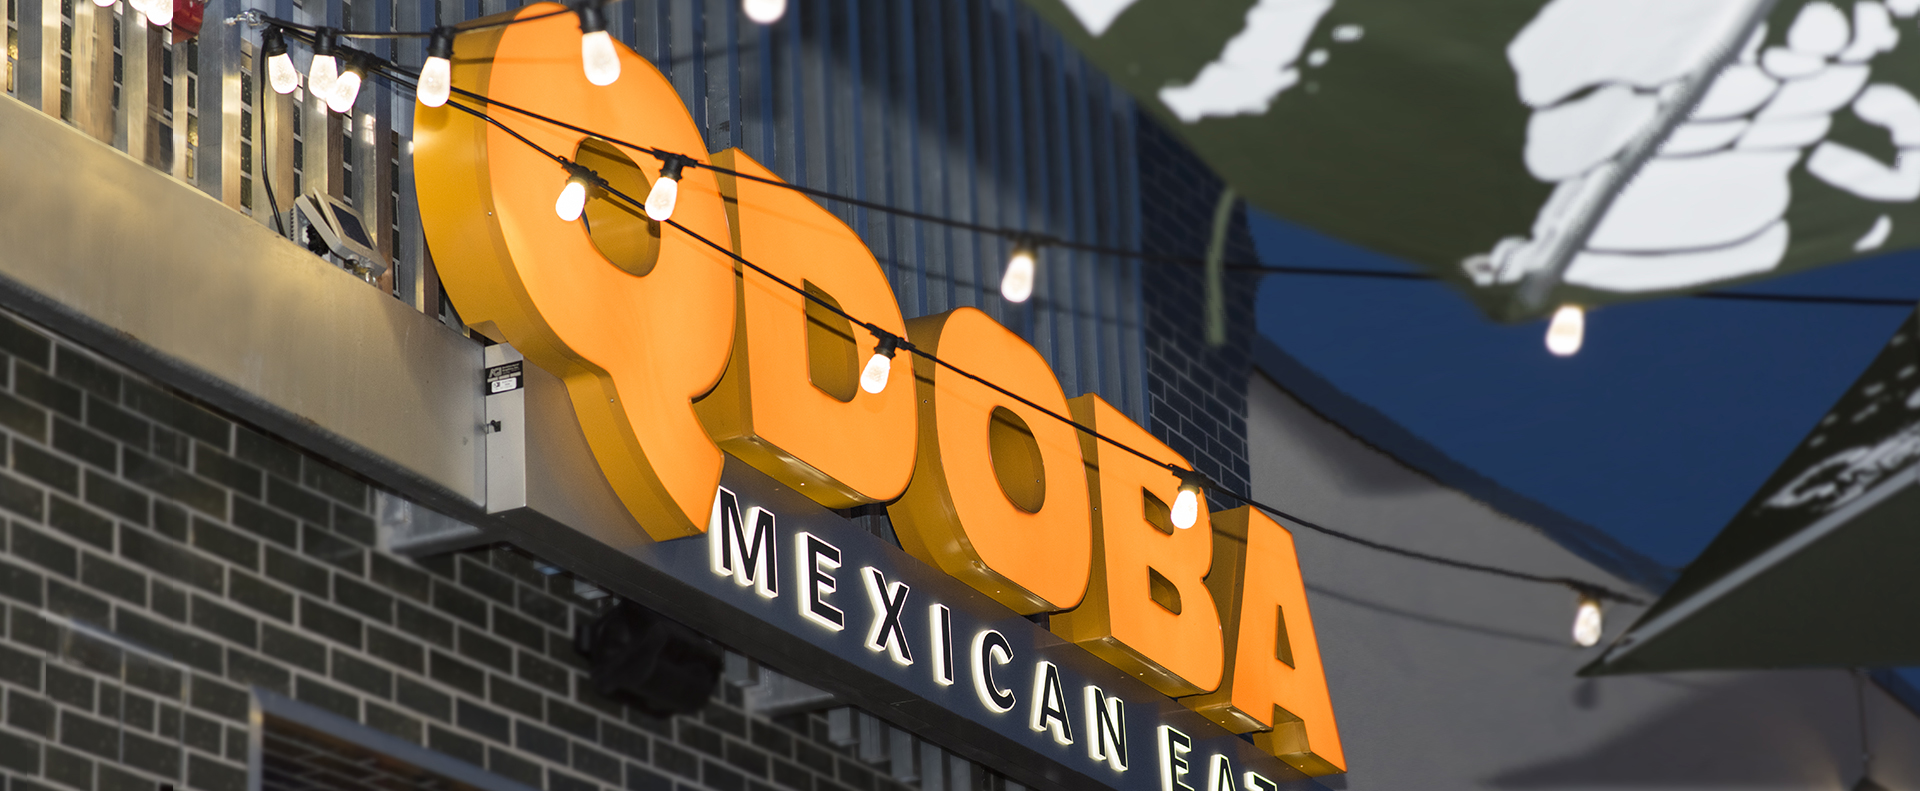 qdoba-cws-home-header-rev